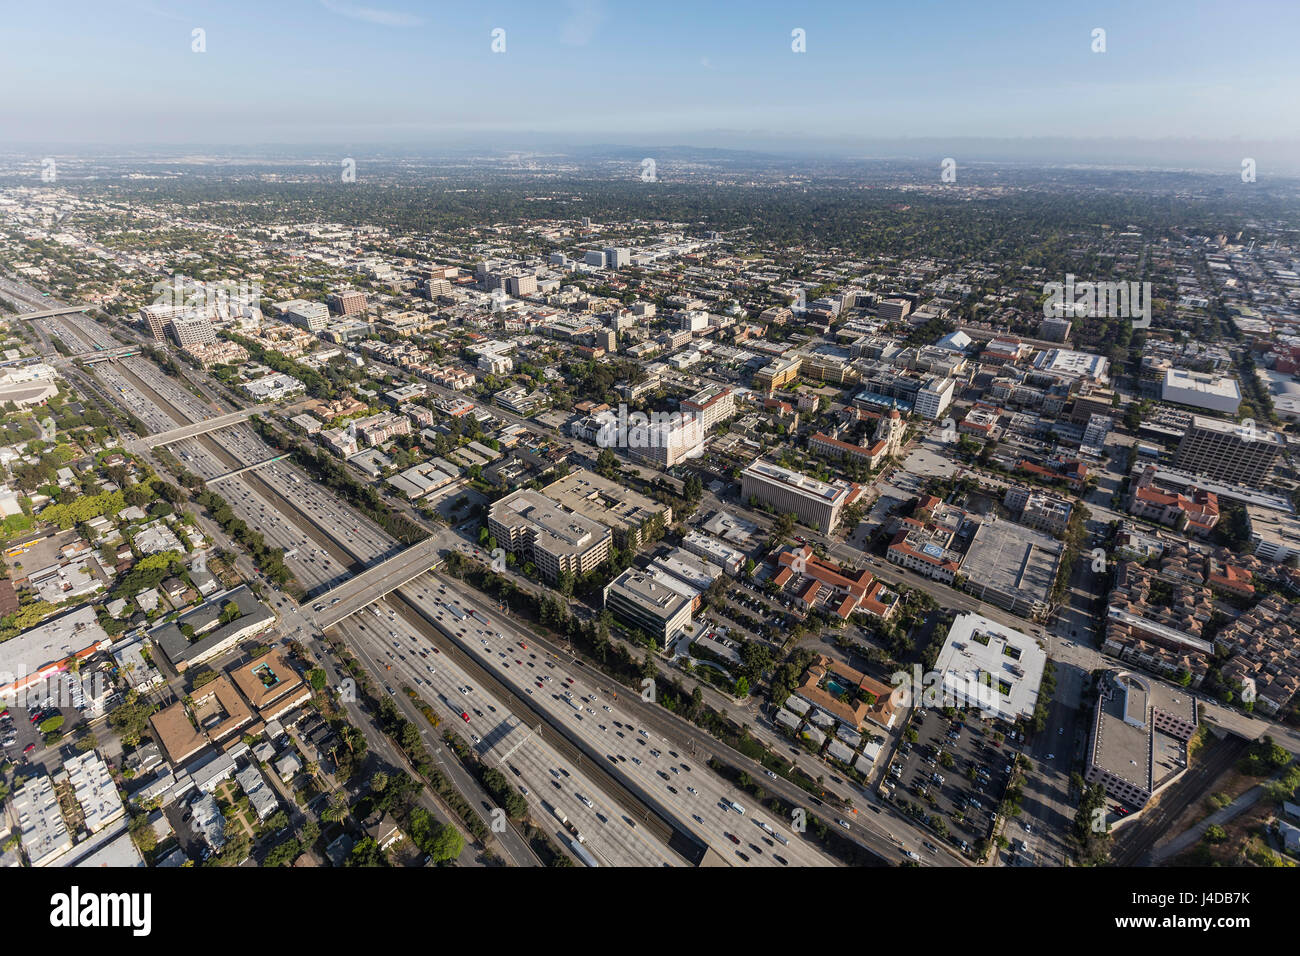 Aerial view of downtown Pasadena and the 210 freeway near Los Angeles, California. - Stock Image